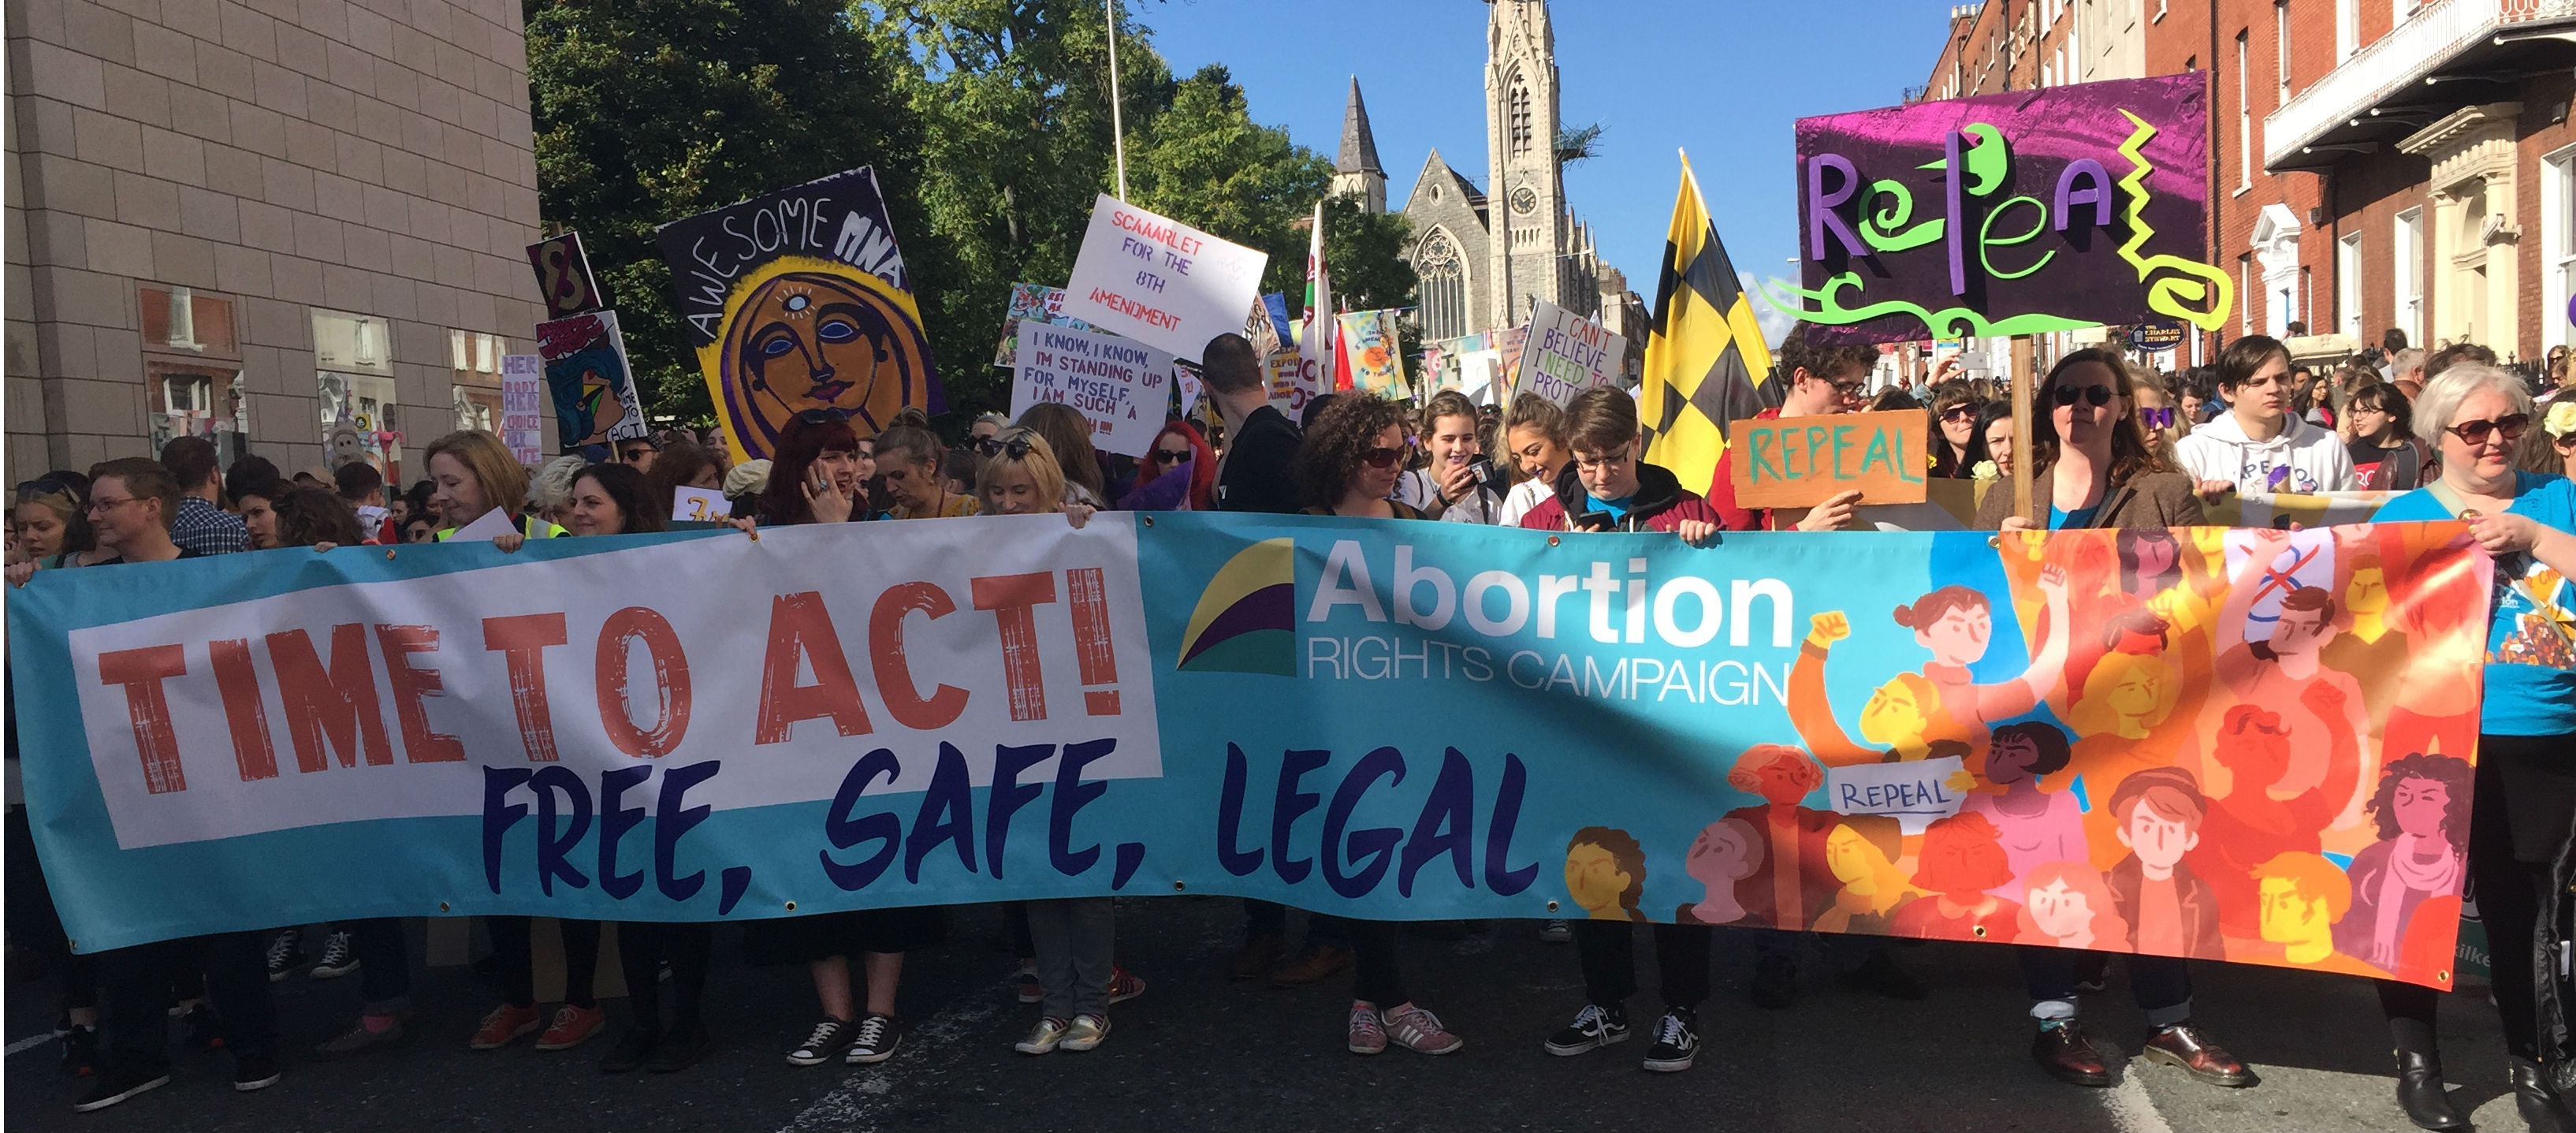 Tens of thousands Attend March for Choice